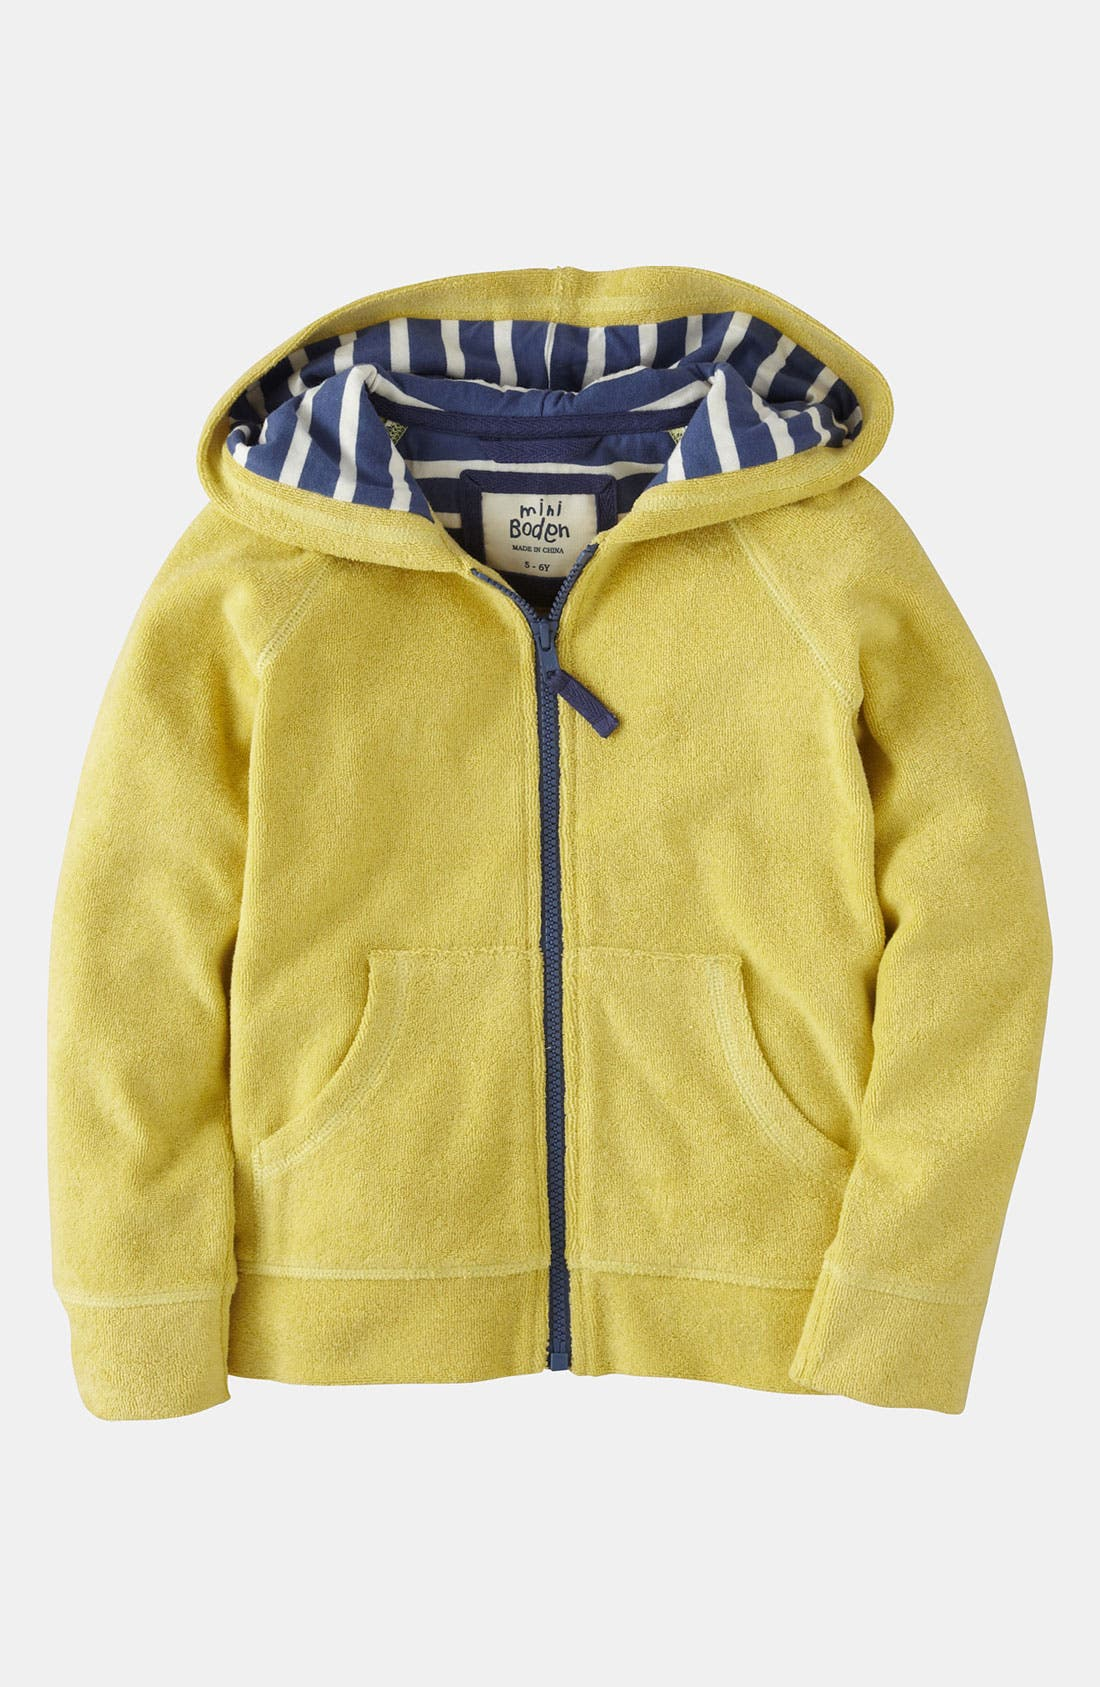 Main Image - Mini Boden 'Toweling' Hoodie (Toddler, Little Girls & Big Girls)